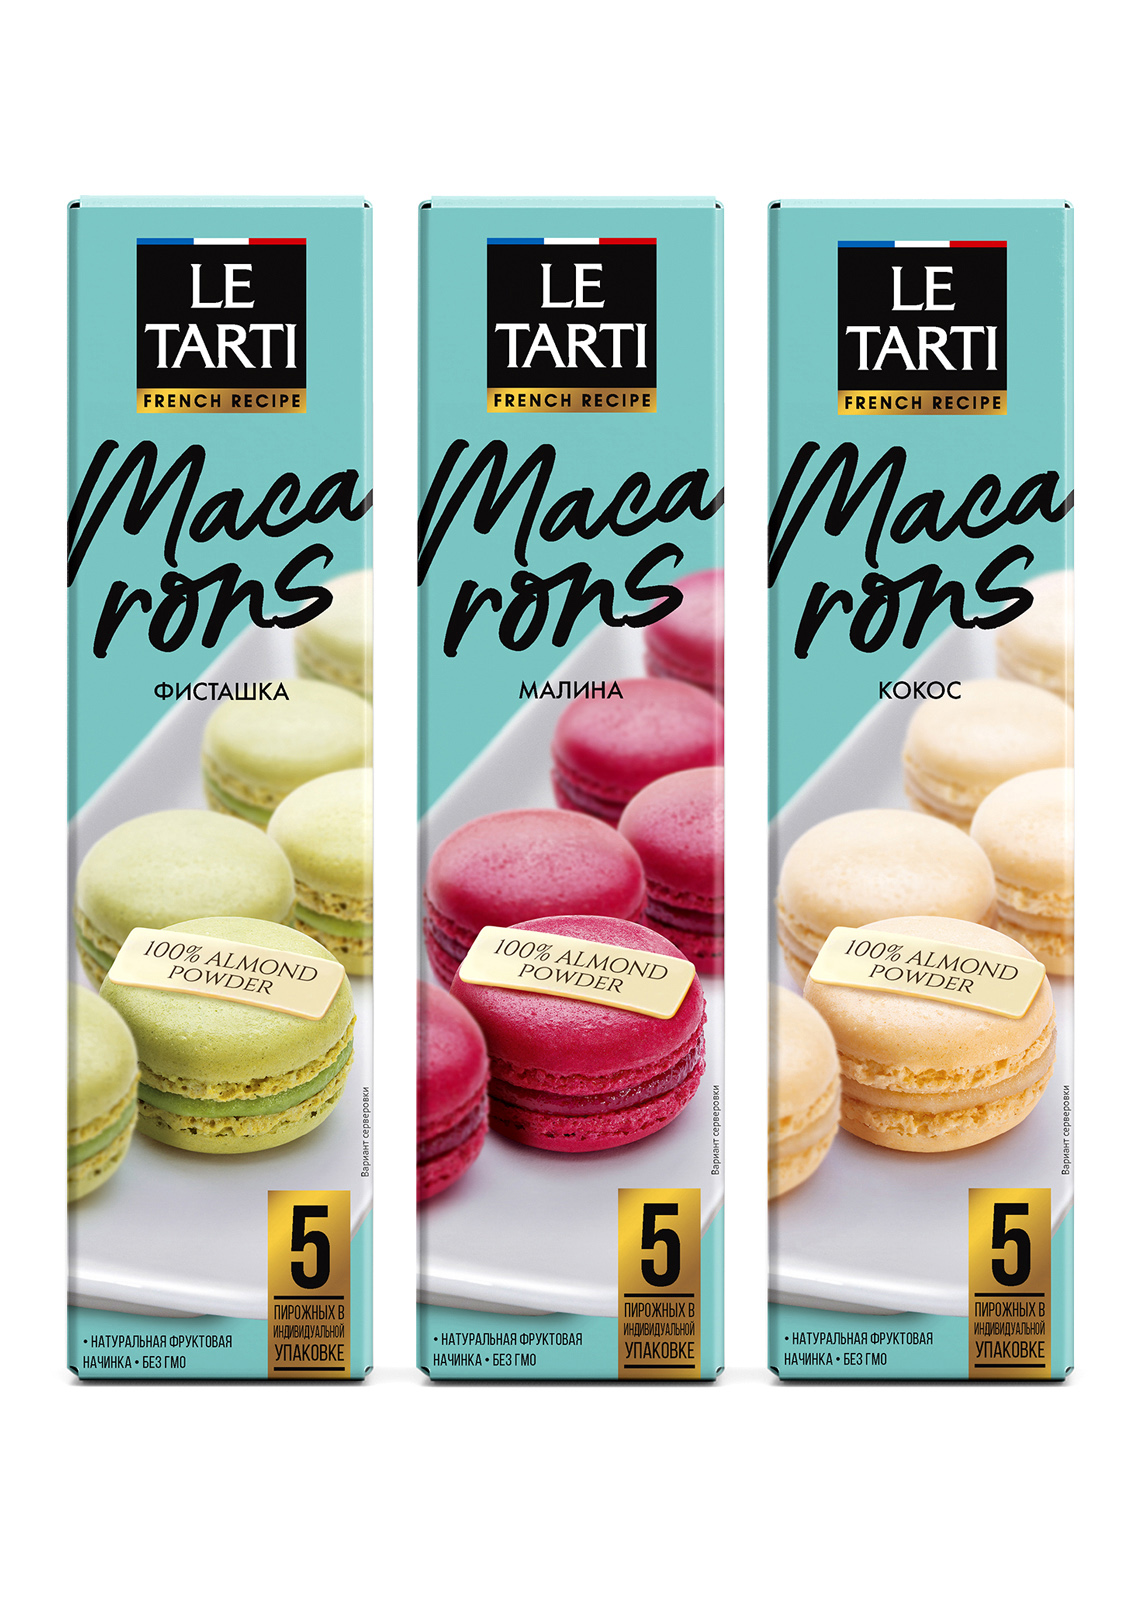 Nadia Kostrova Creates Brand and Packaging Design for Le Tarti Macaroon for Akulchev